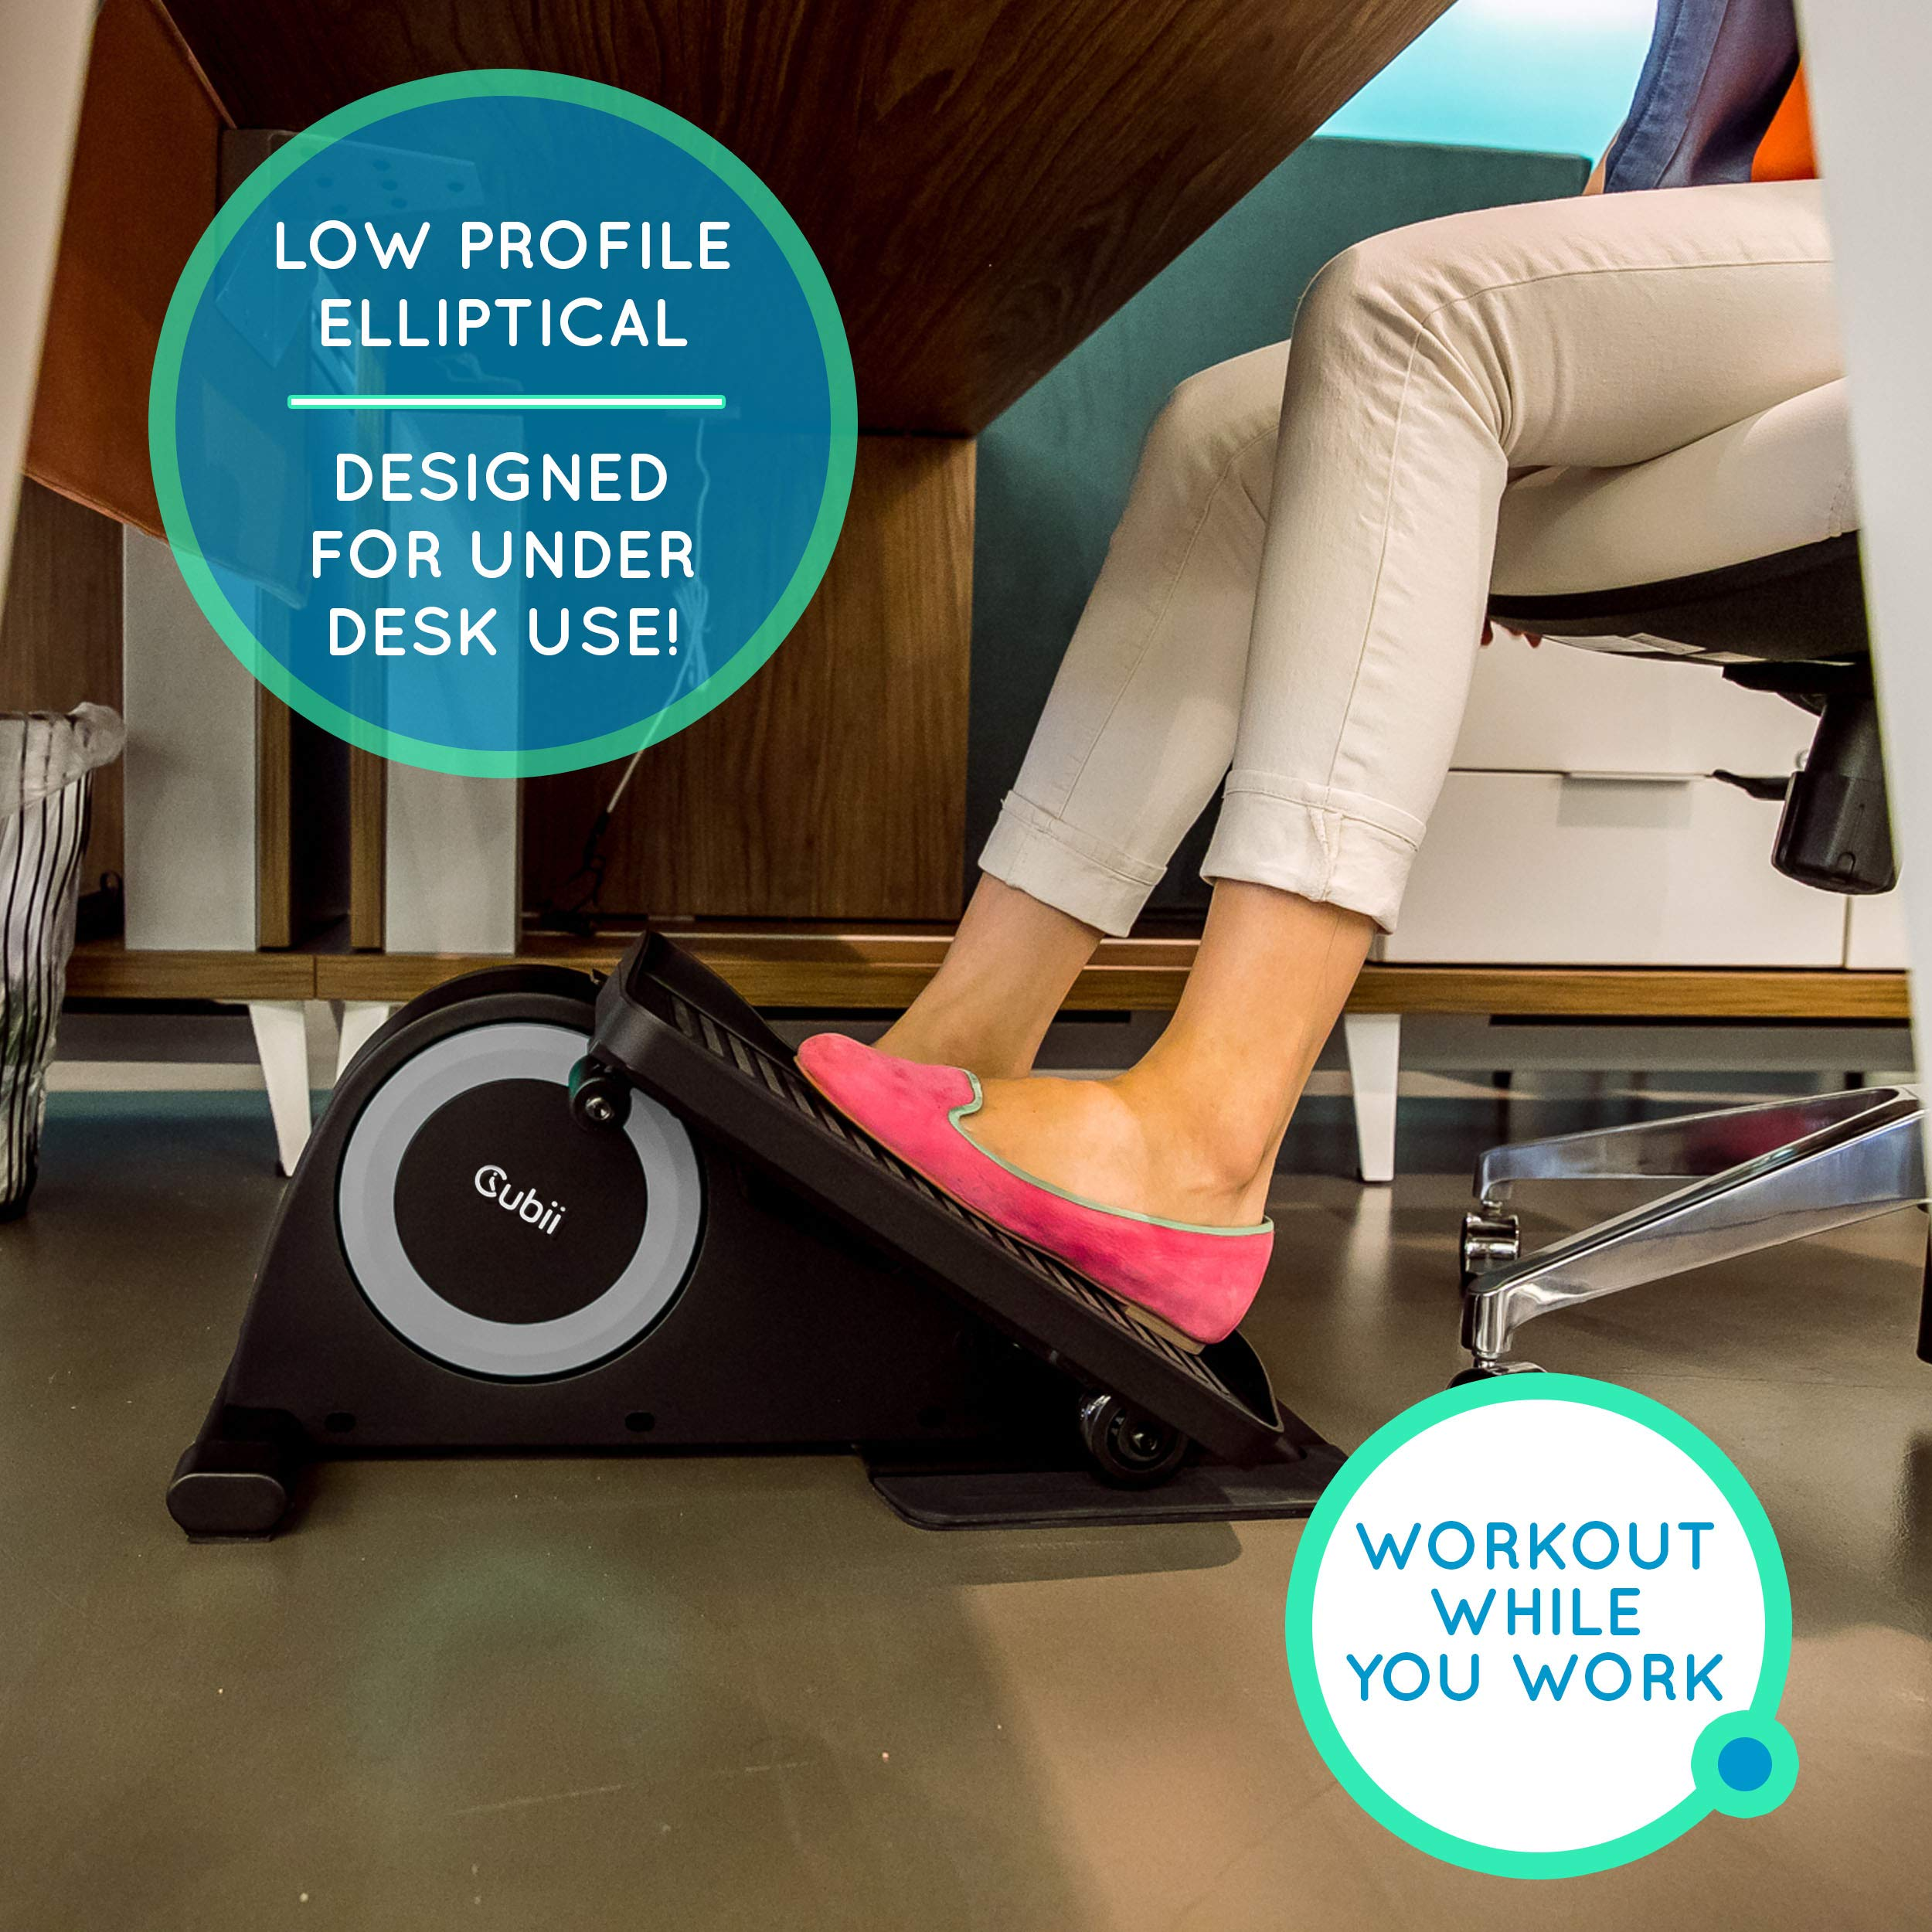 Cubii Jr: Desk Elliptical w/Built in Display Monitor, Easy Assembly, Quiet & Compact, Adjustable Resistance (Silver) by Cubii (Image #5)